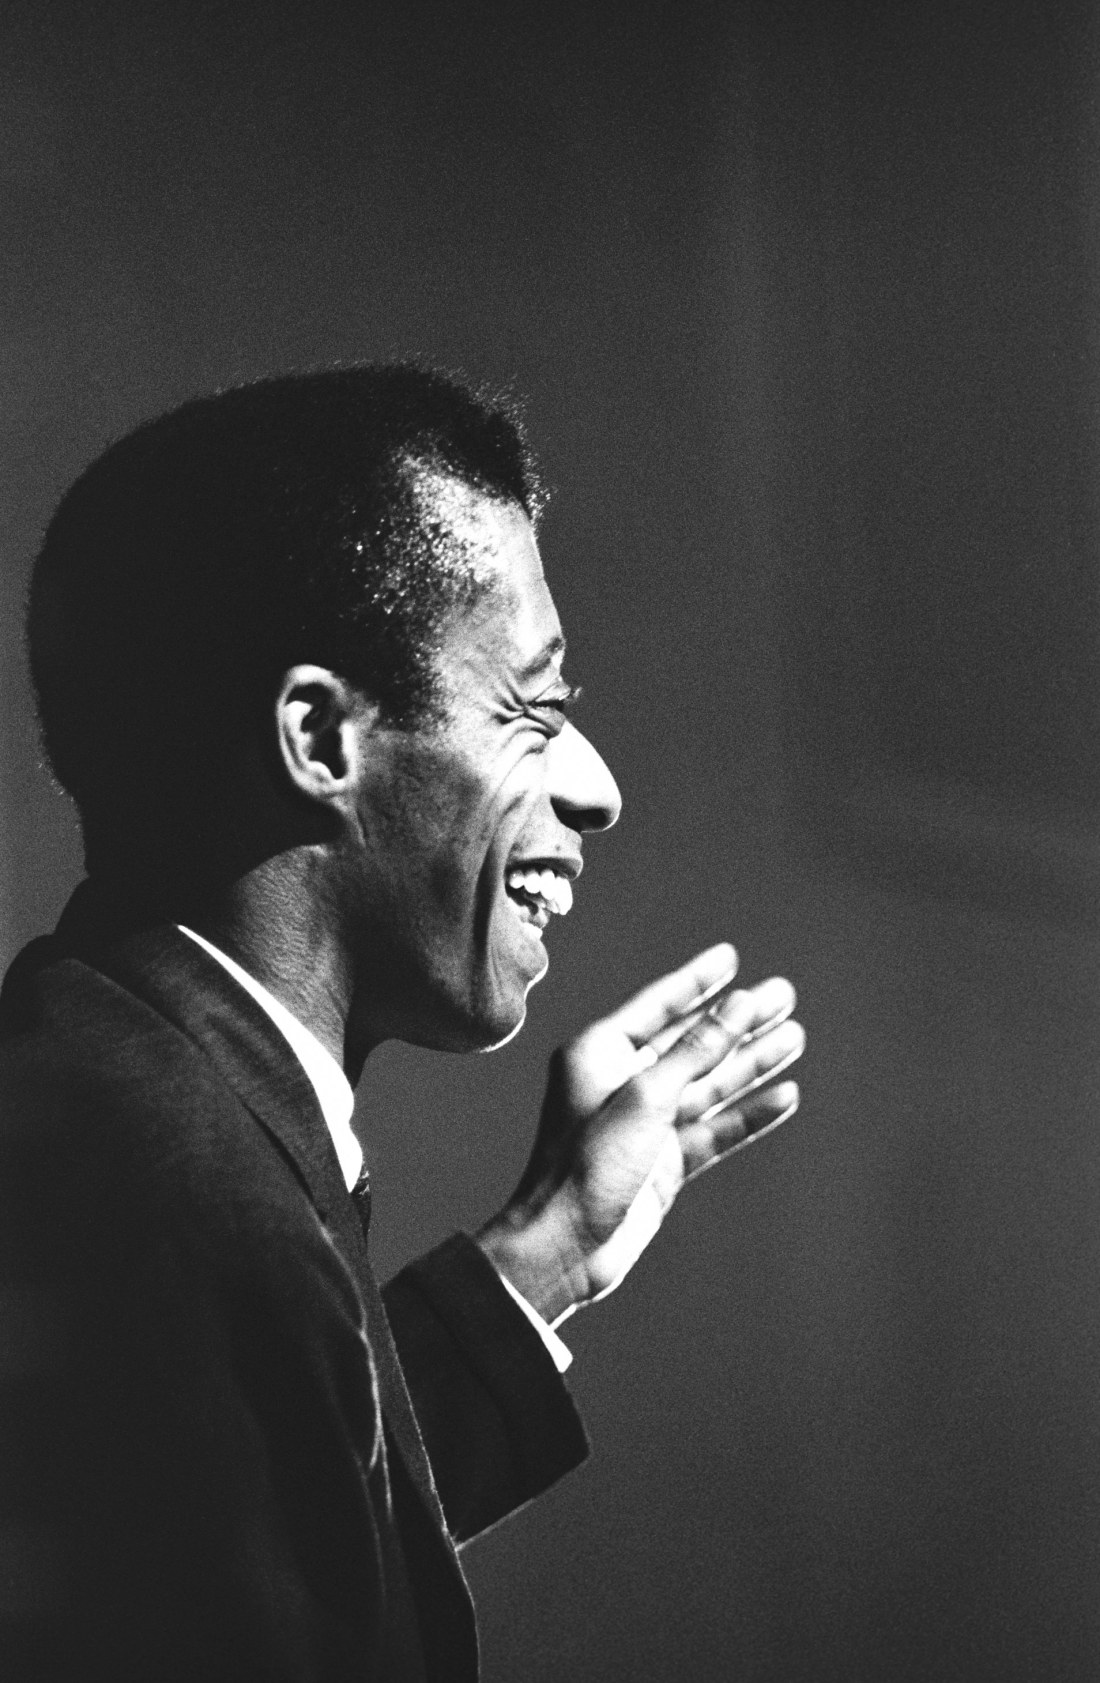 African American Author, African American Writer, African American Books, Black Books, Civil Rights Activist, James Baldwin, KOLUMN Magazine, KOLUMN